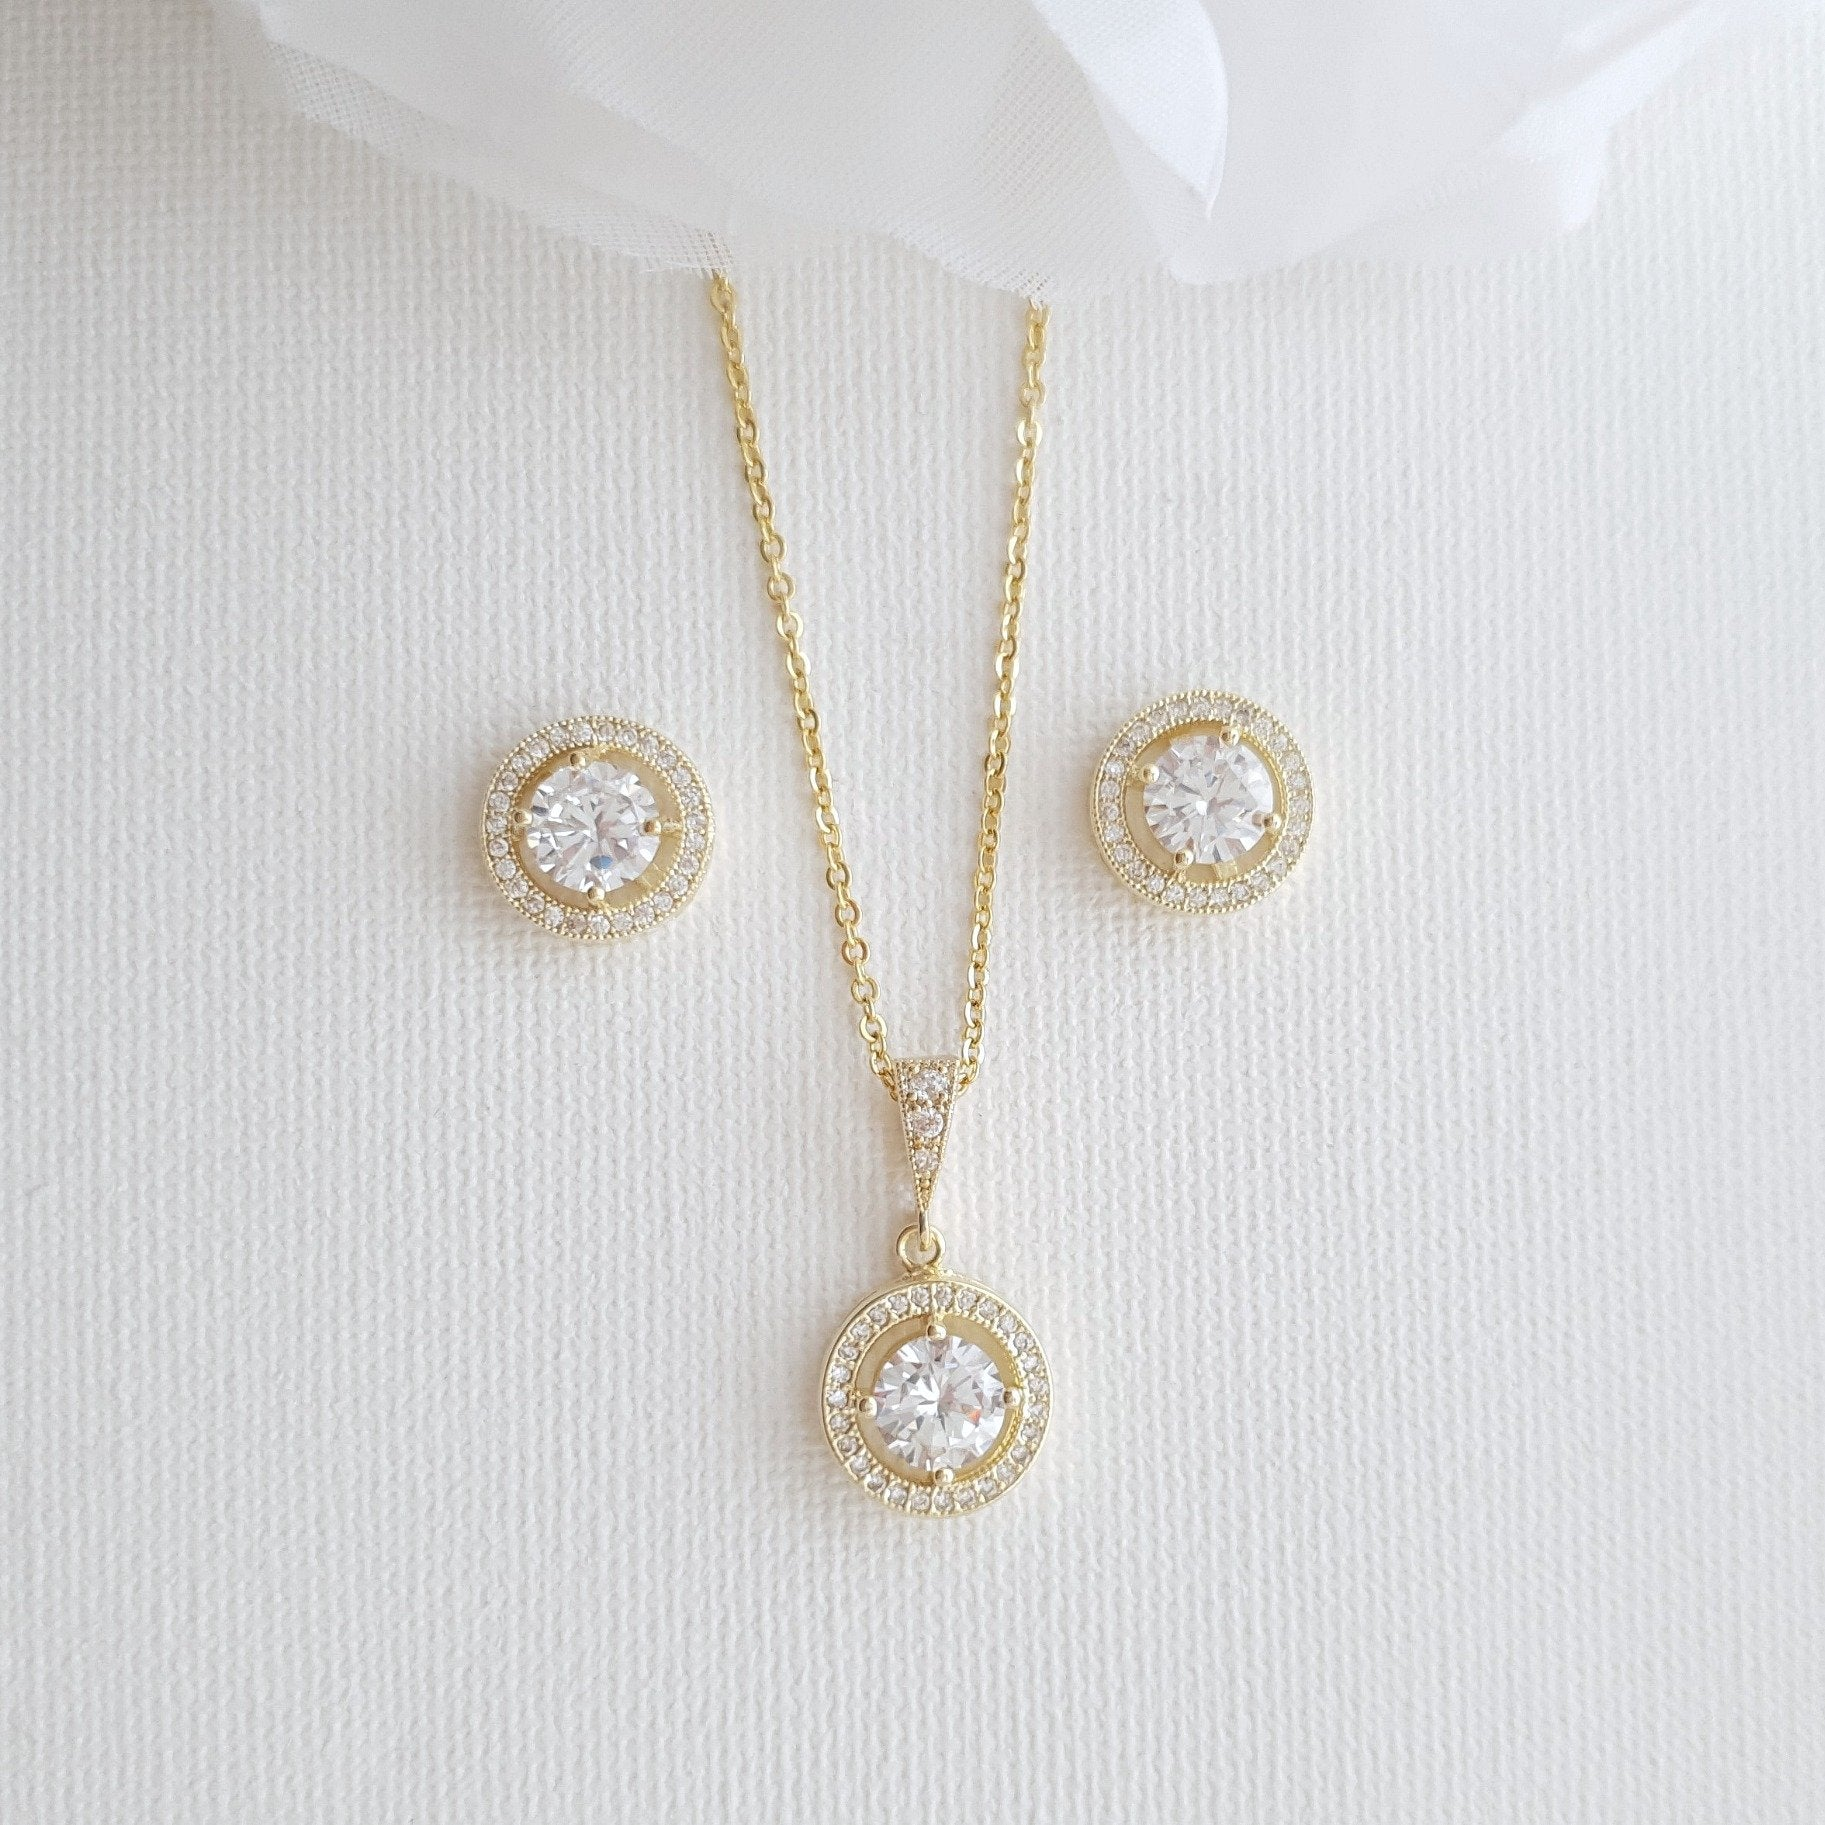 Bridal and Bridesmaids 14k Gold Jewelry Set-Denise - PoetryDesigns